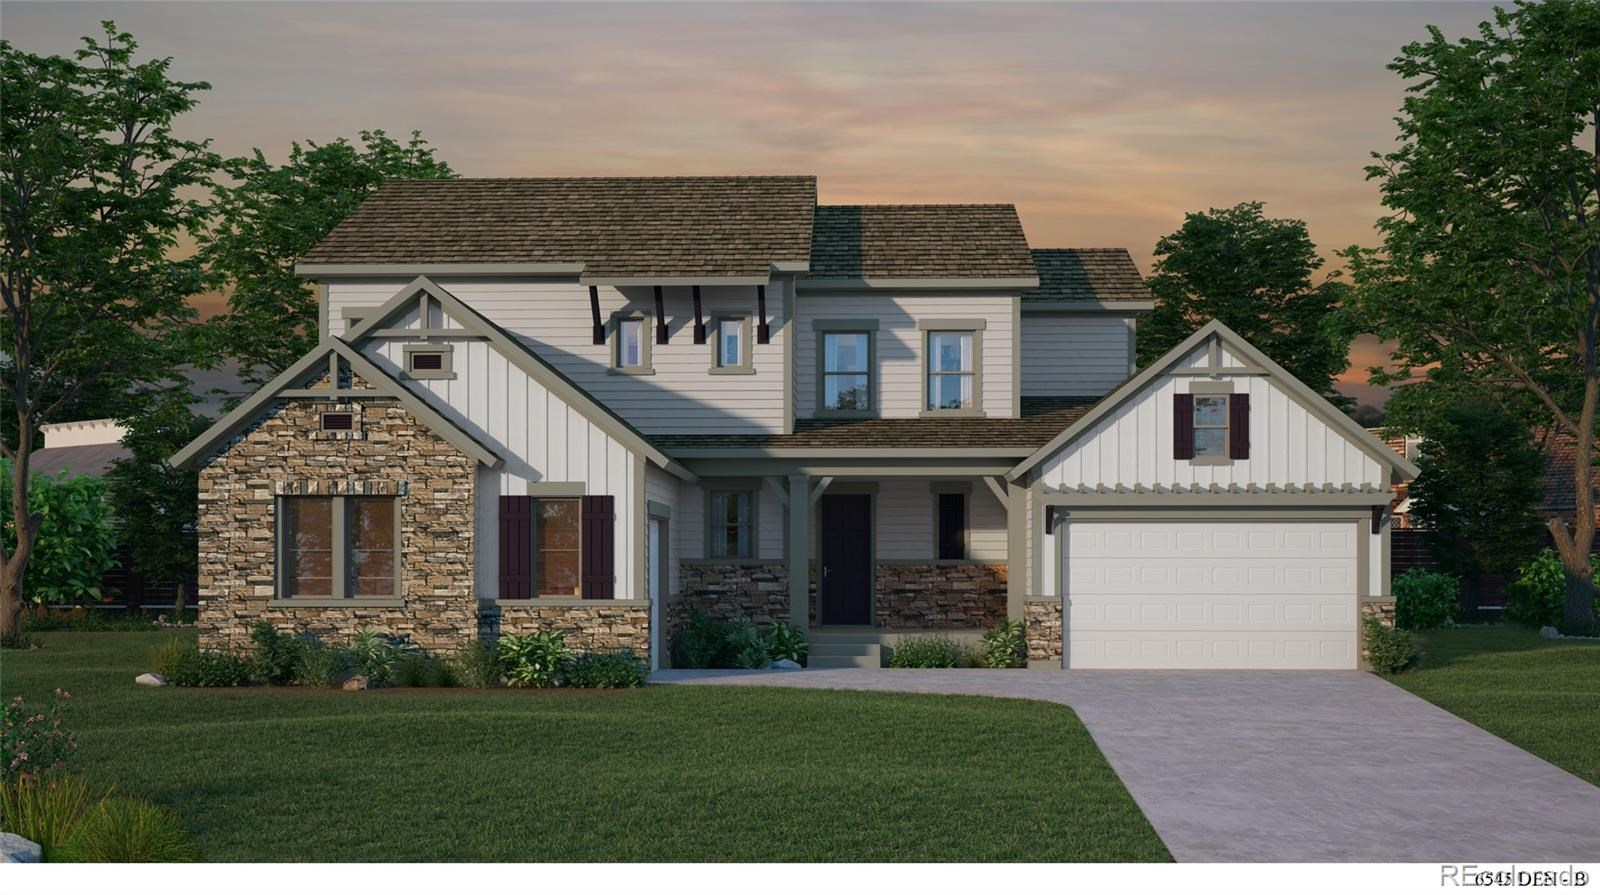 MLS# 5236856 - 1 - 18592 W 95th Place, Arvada, CO 80007